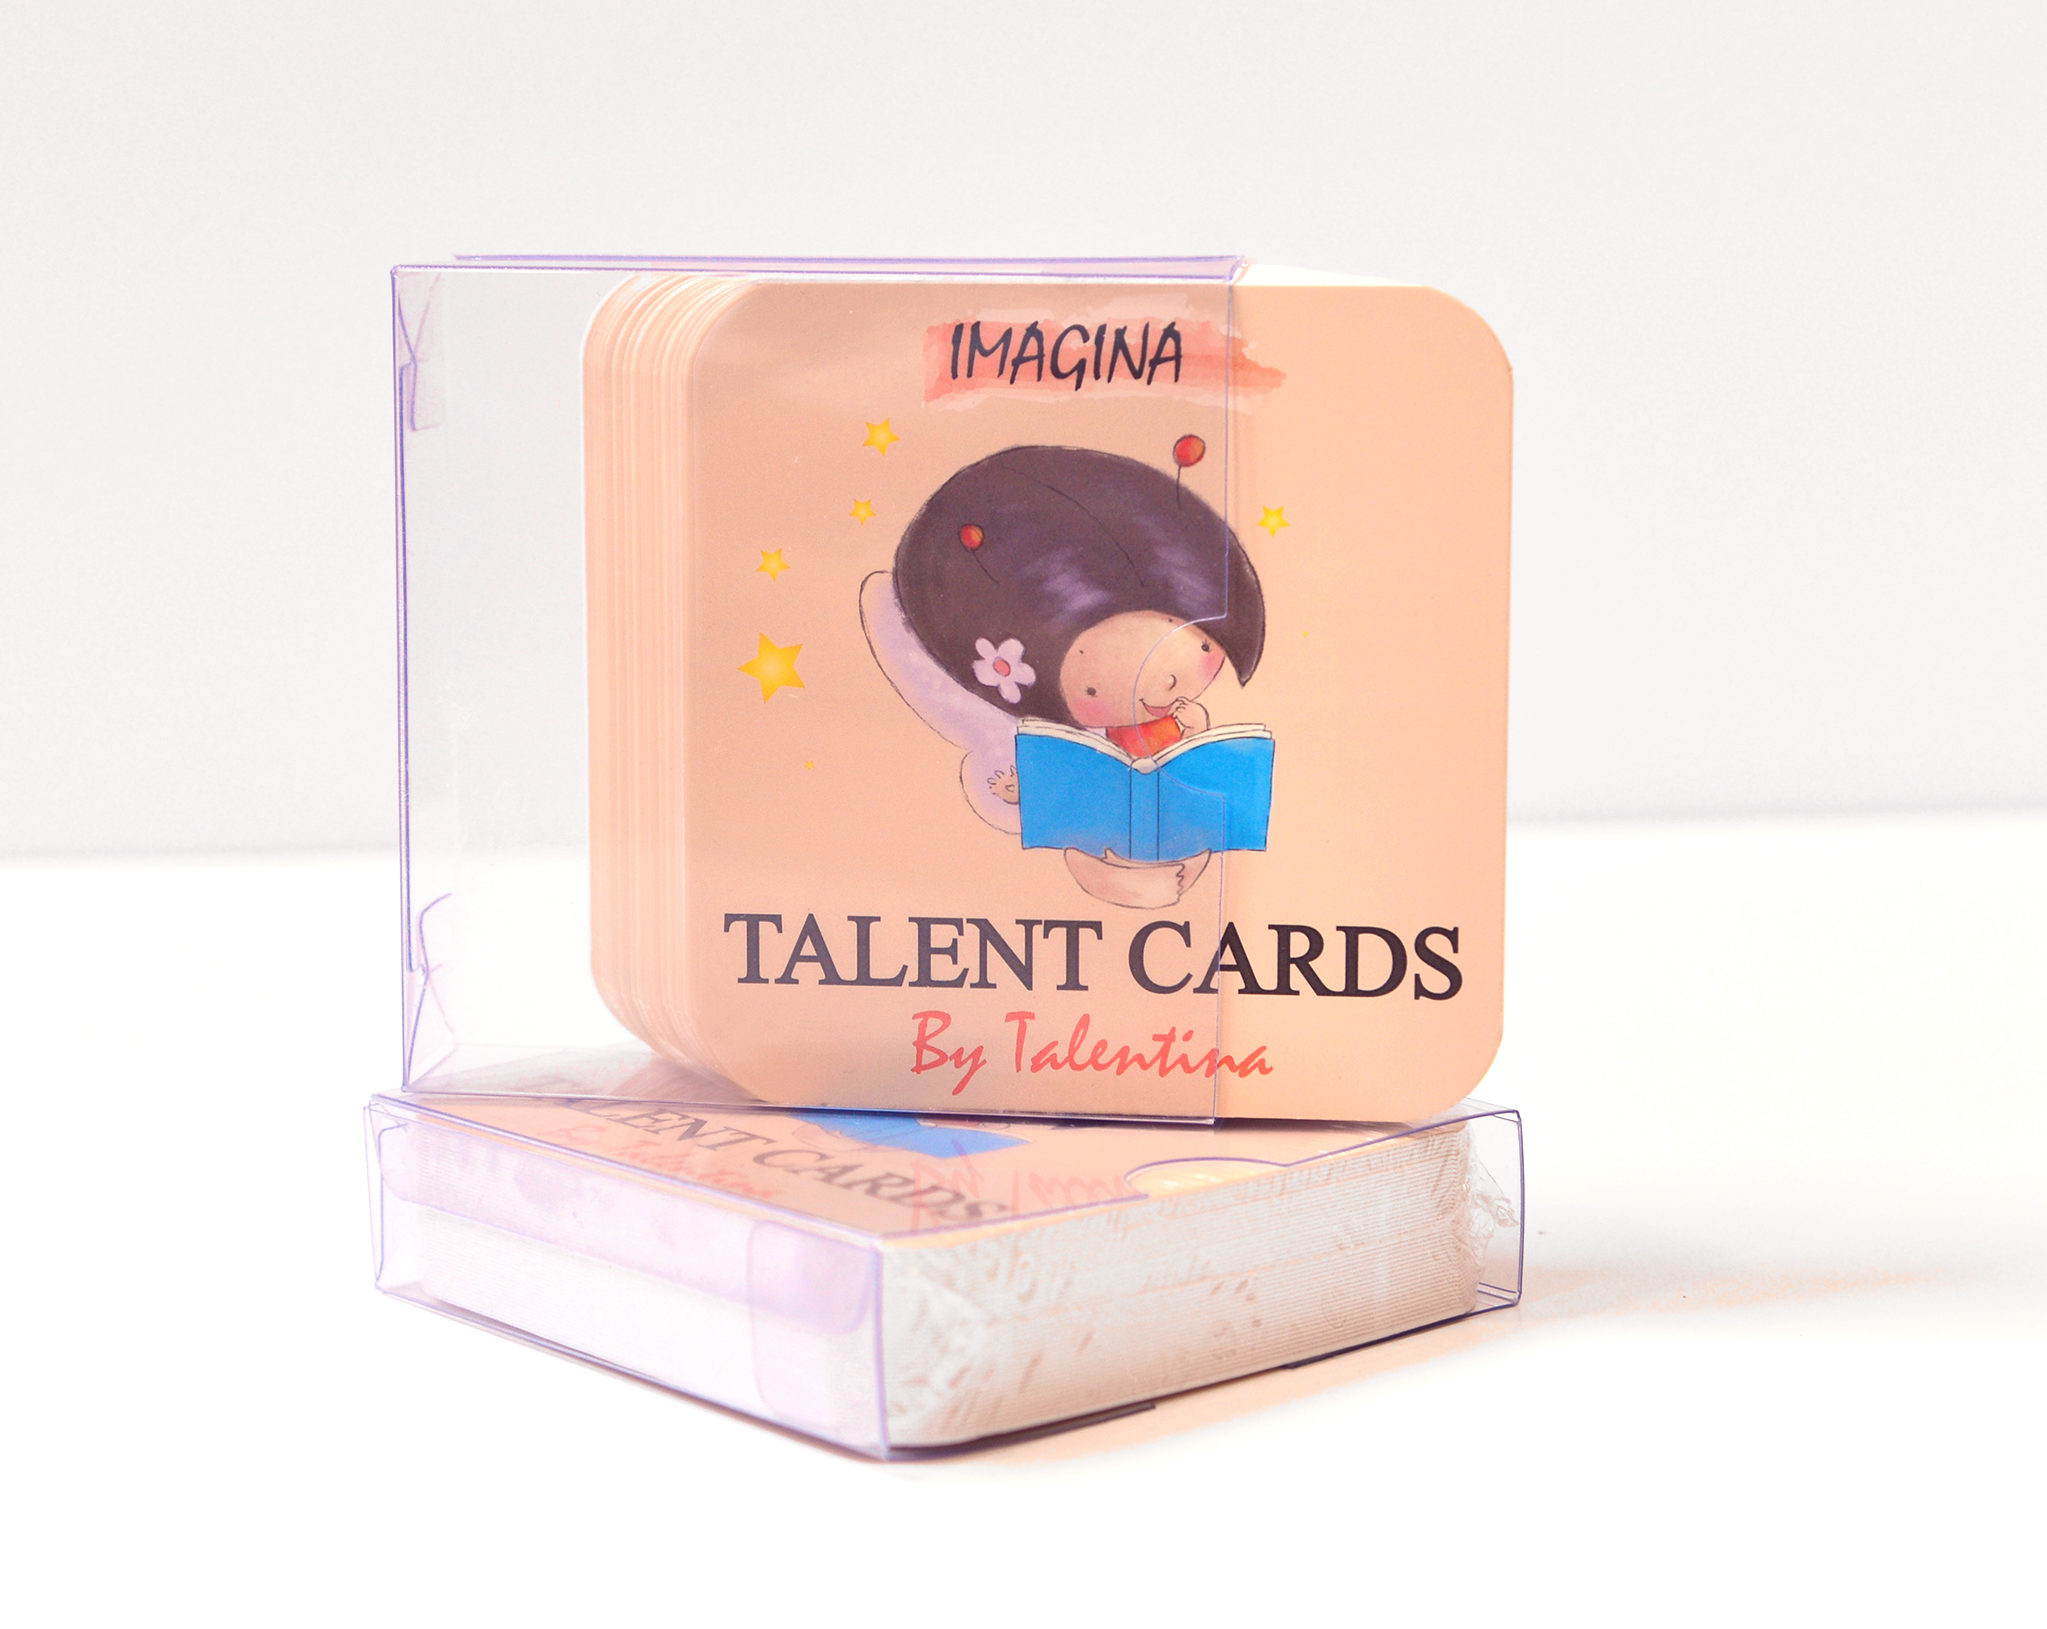 Talent Cards Imagina